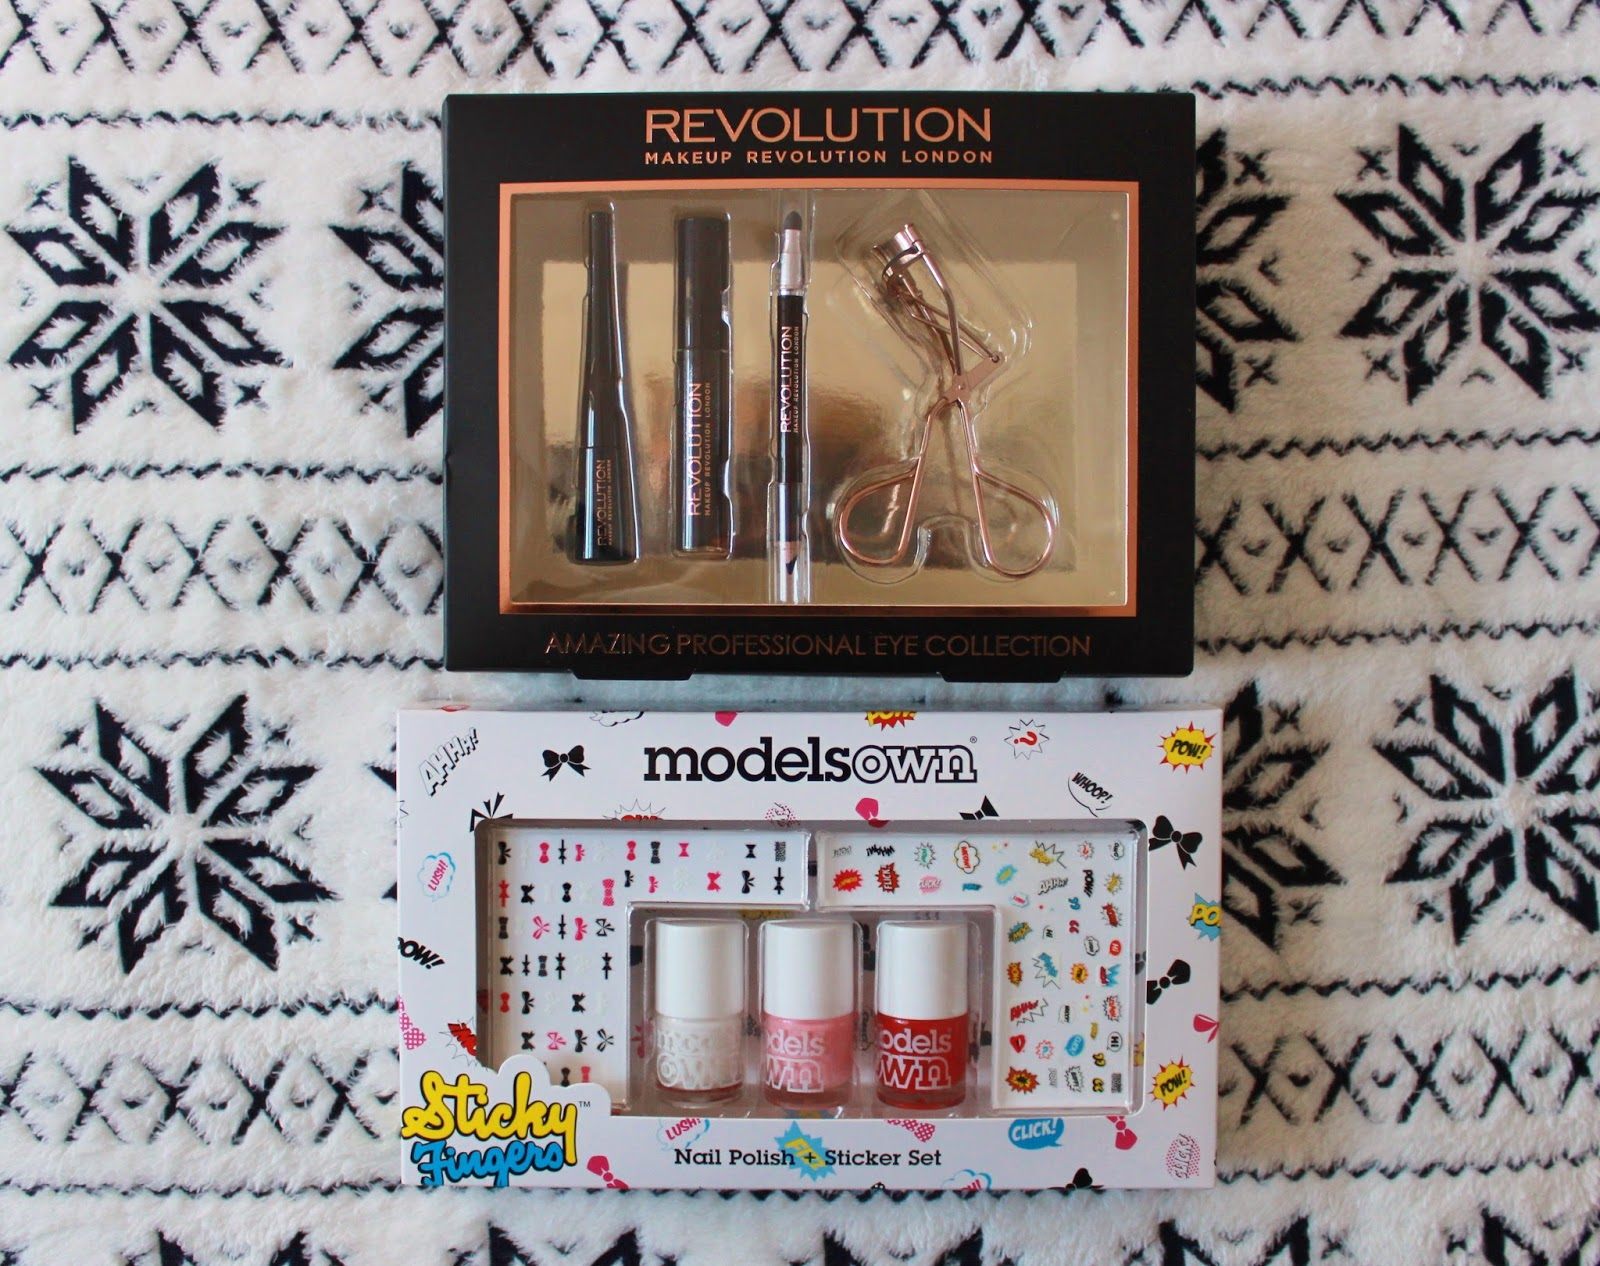 Makeup Revolution and Models own giveaway prize